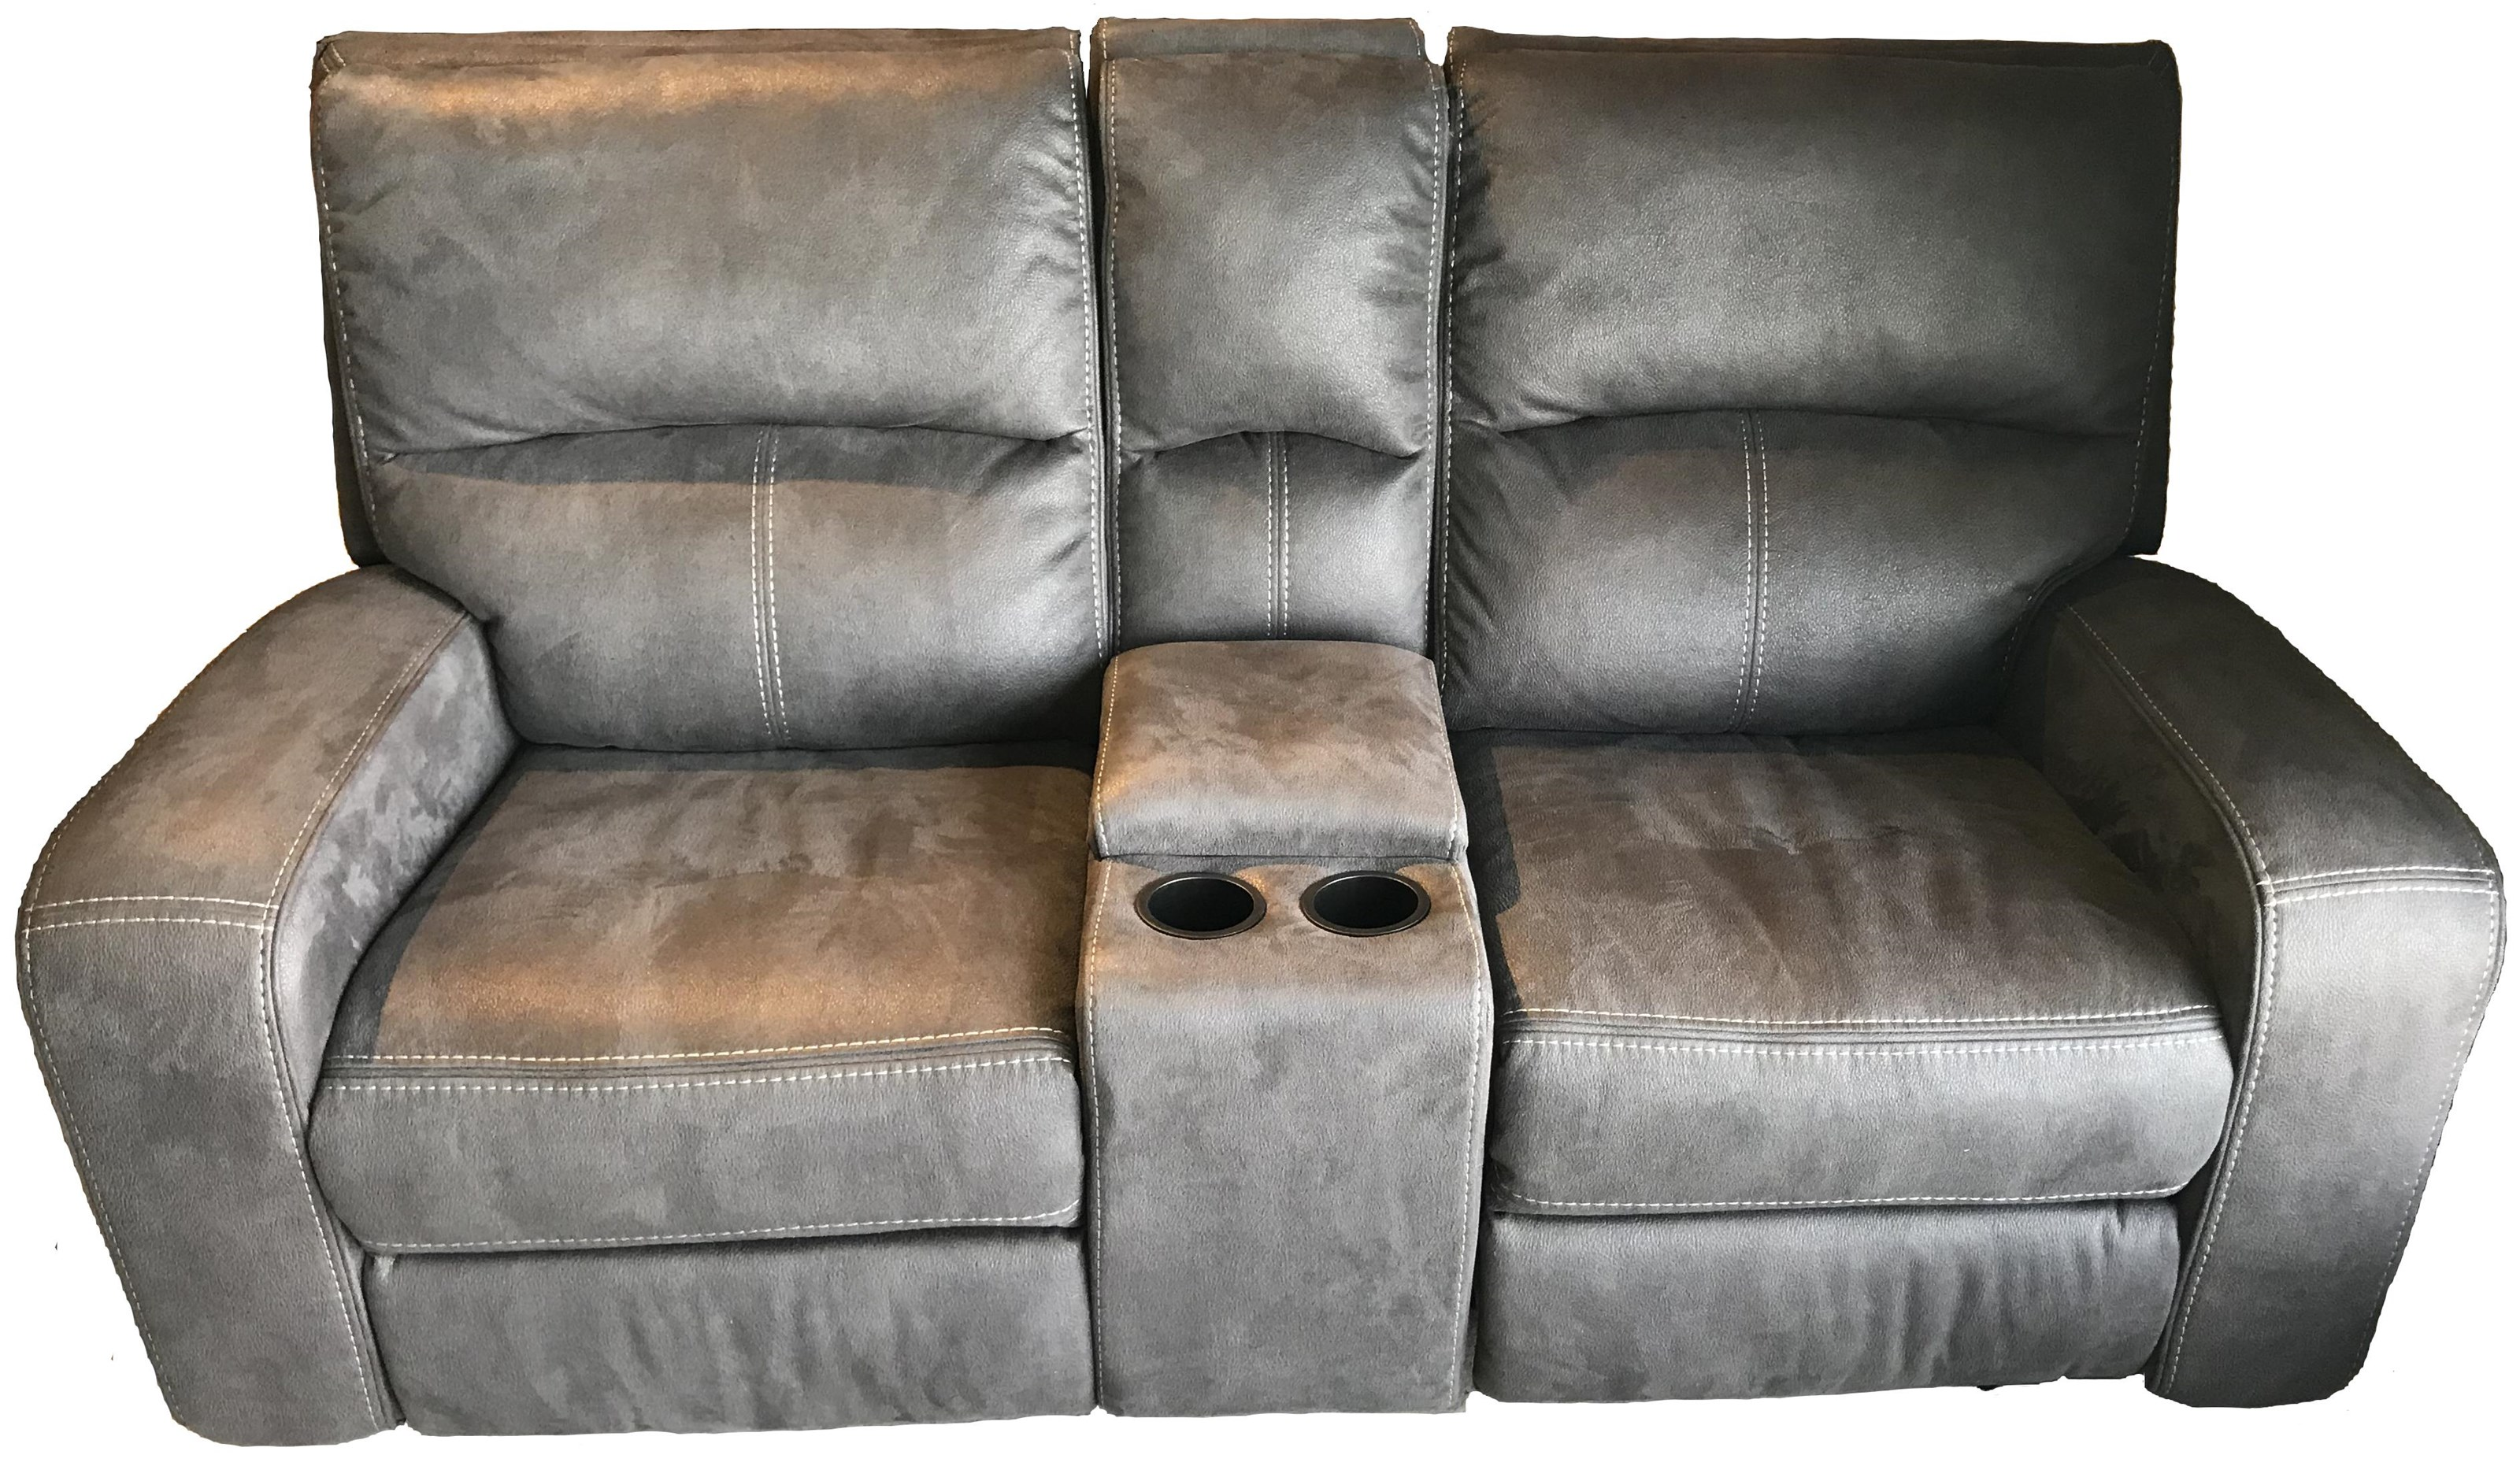 5168M Motion High Back Glider Console Love Seat w/ USB by Cheers Sofa at Westrich Furniture & Appliances